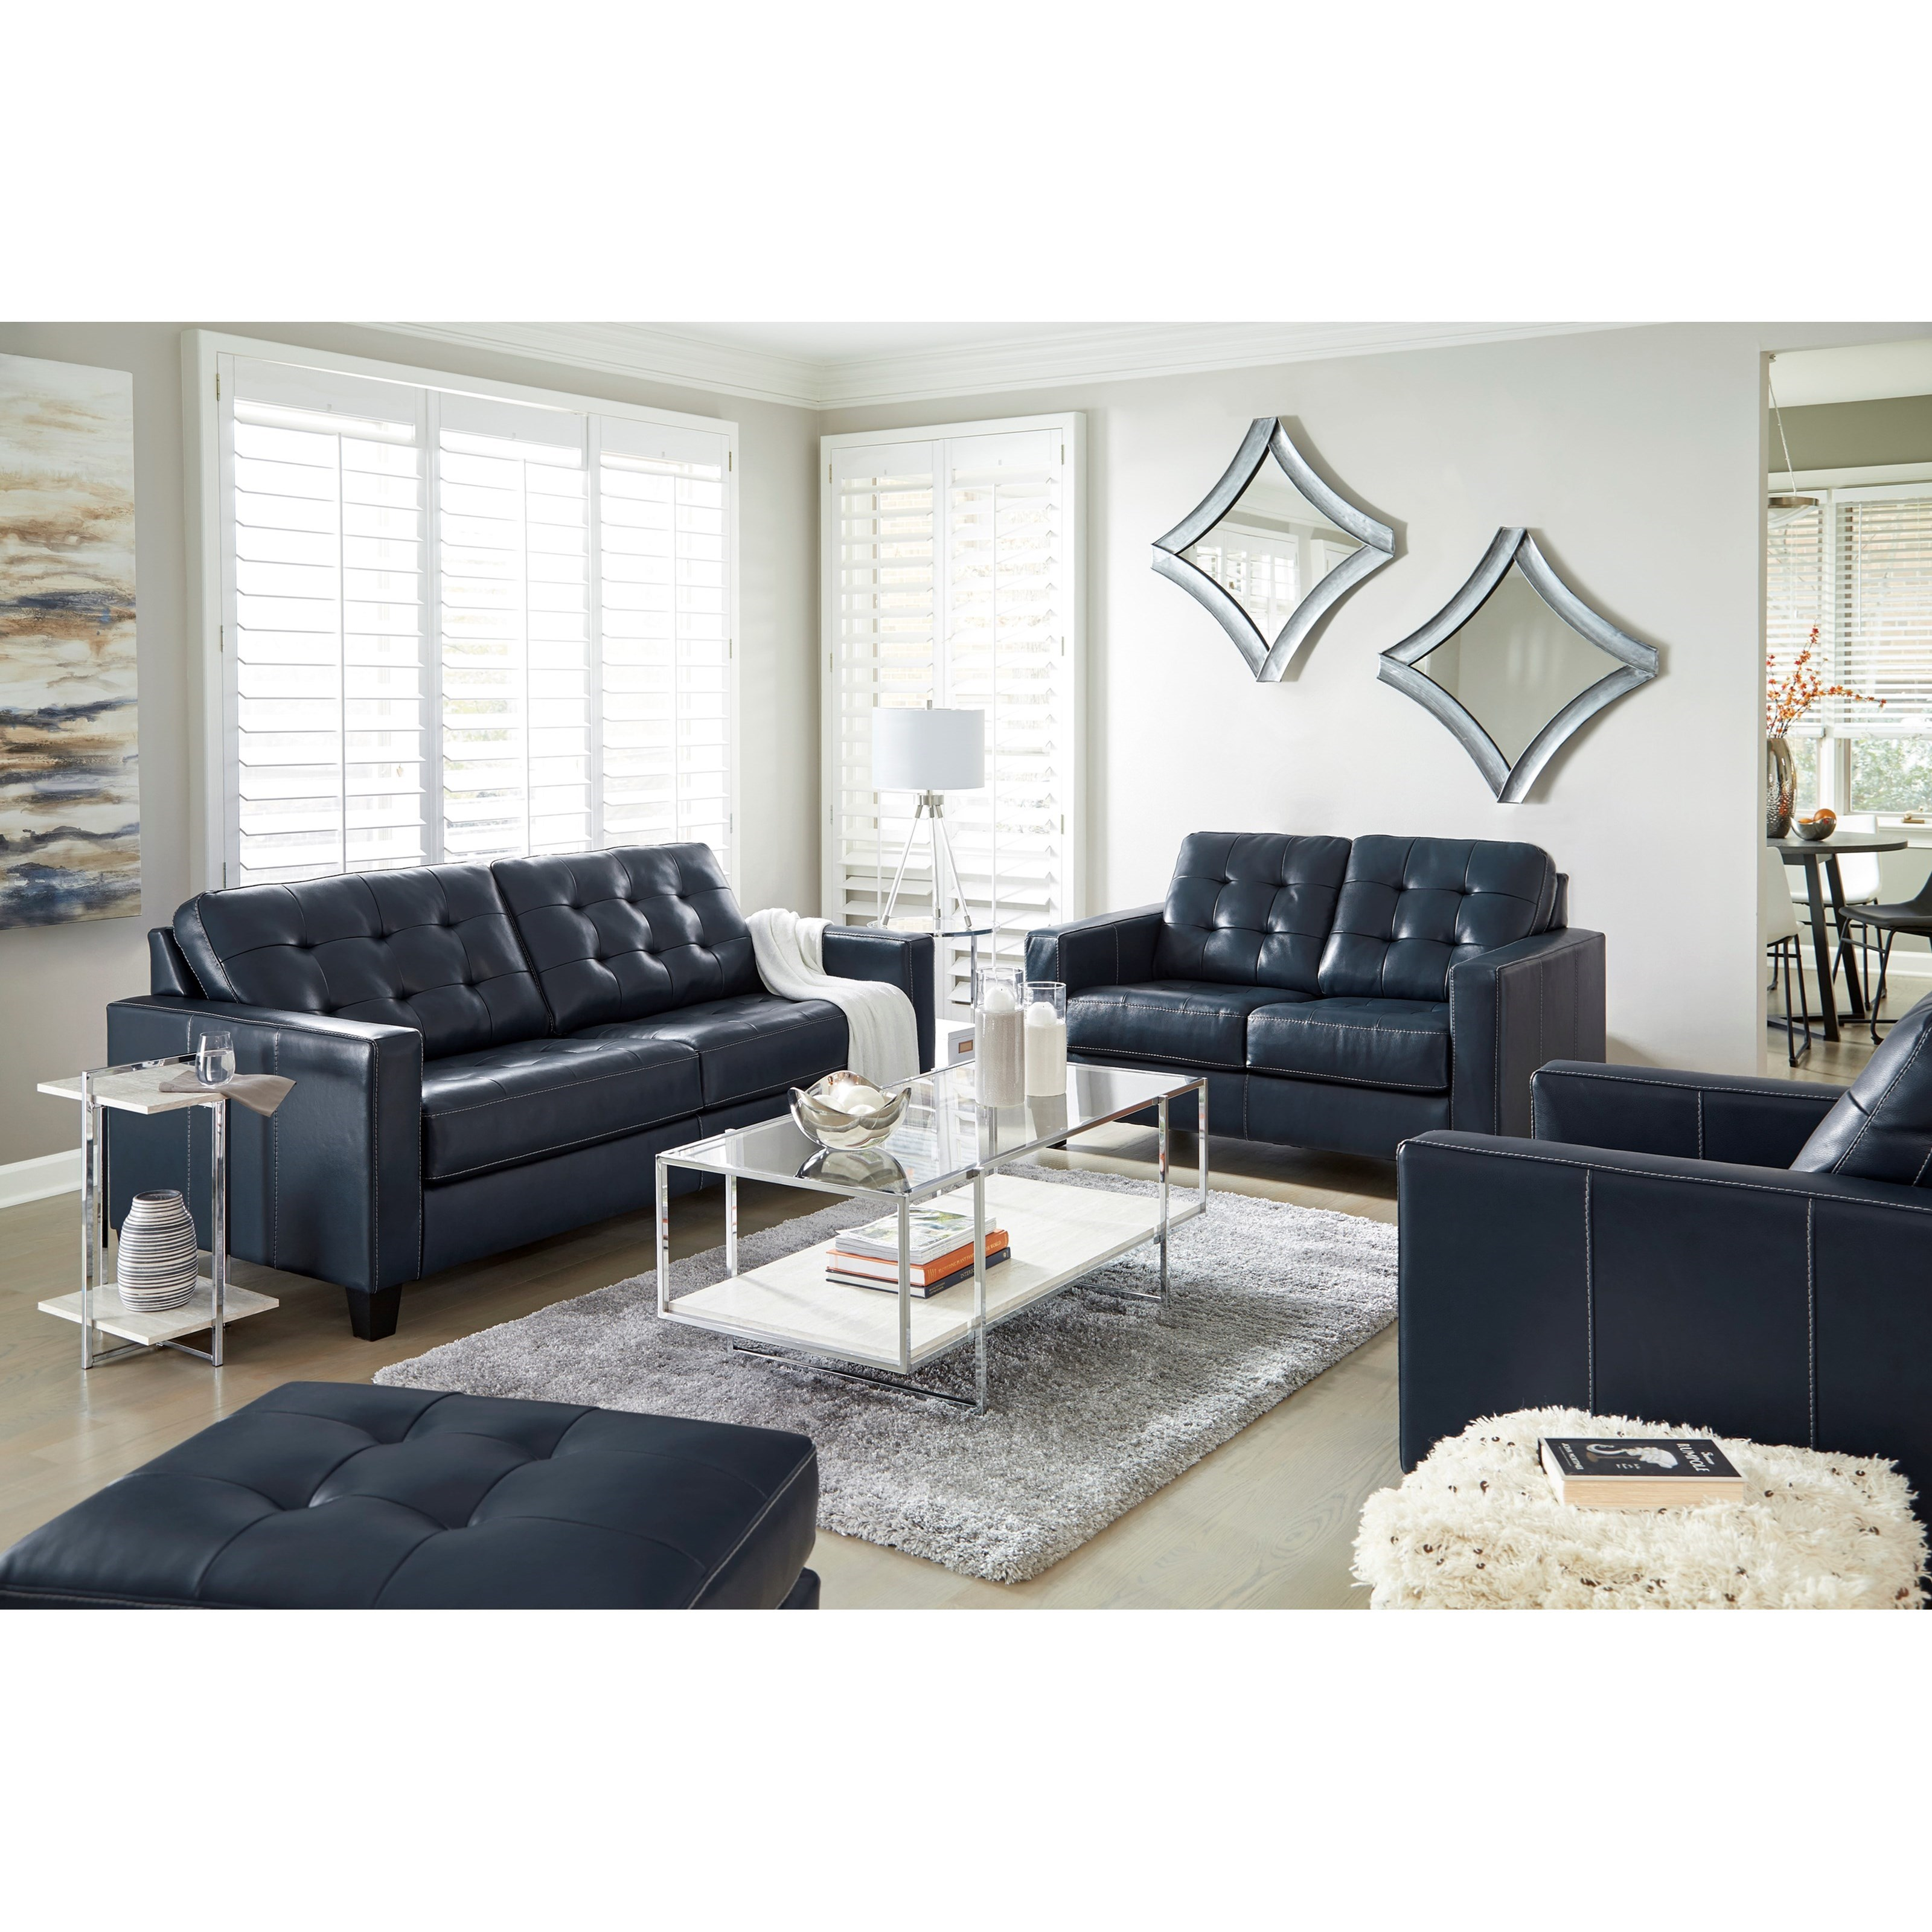 Altonbury Stationary Living Room Group by Signature Design by Ashley at Household Furniture